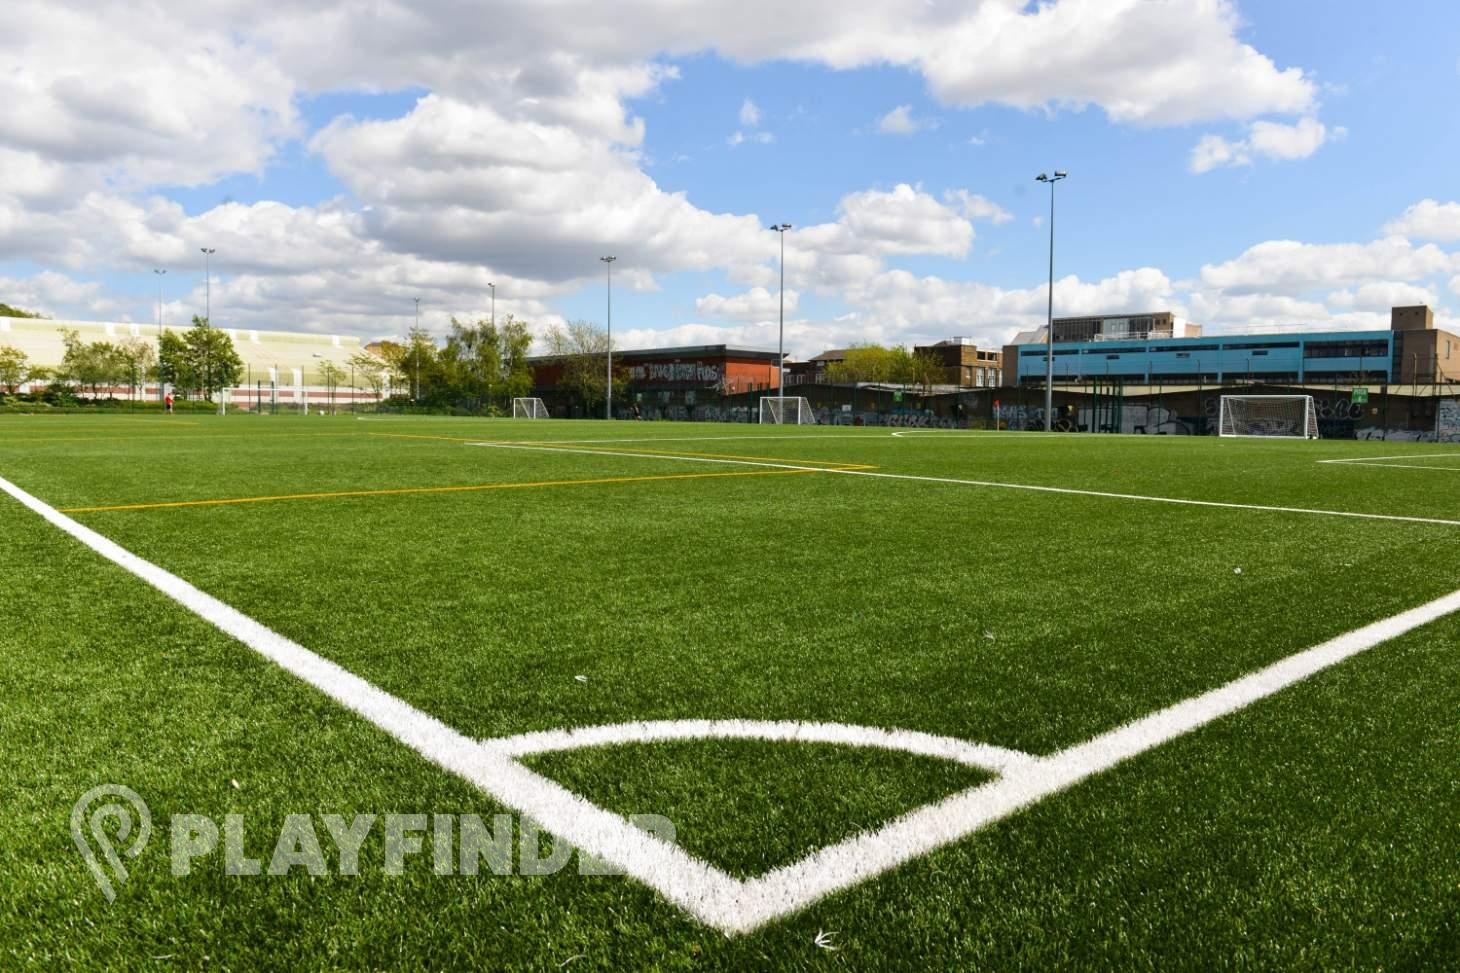 Market Road Football Pitches 11 a side | 3G Astroturf football pitch